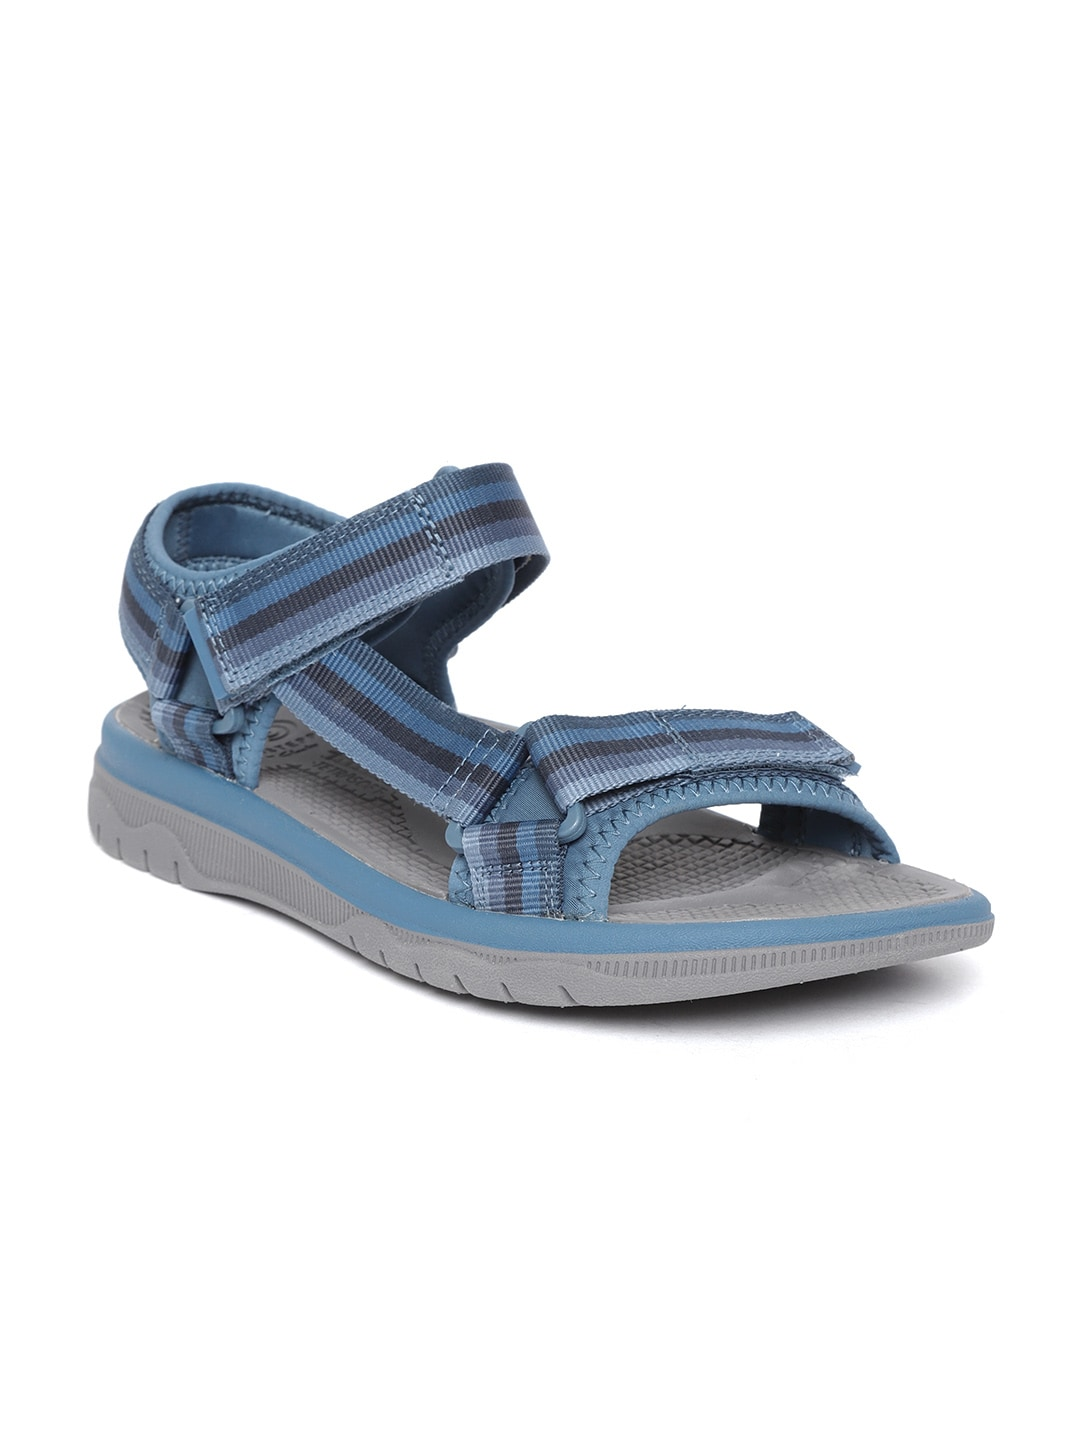 efd82fd991e3 Floater Sandals Online - Buy Floaters Sandals for Men and Women Online in  India